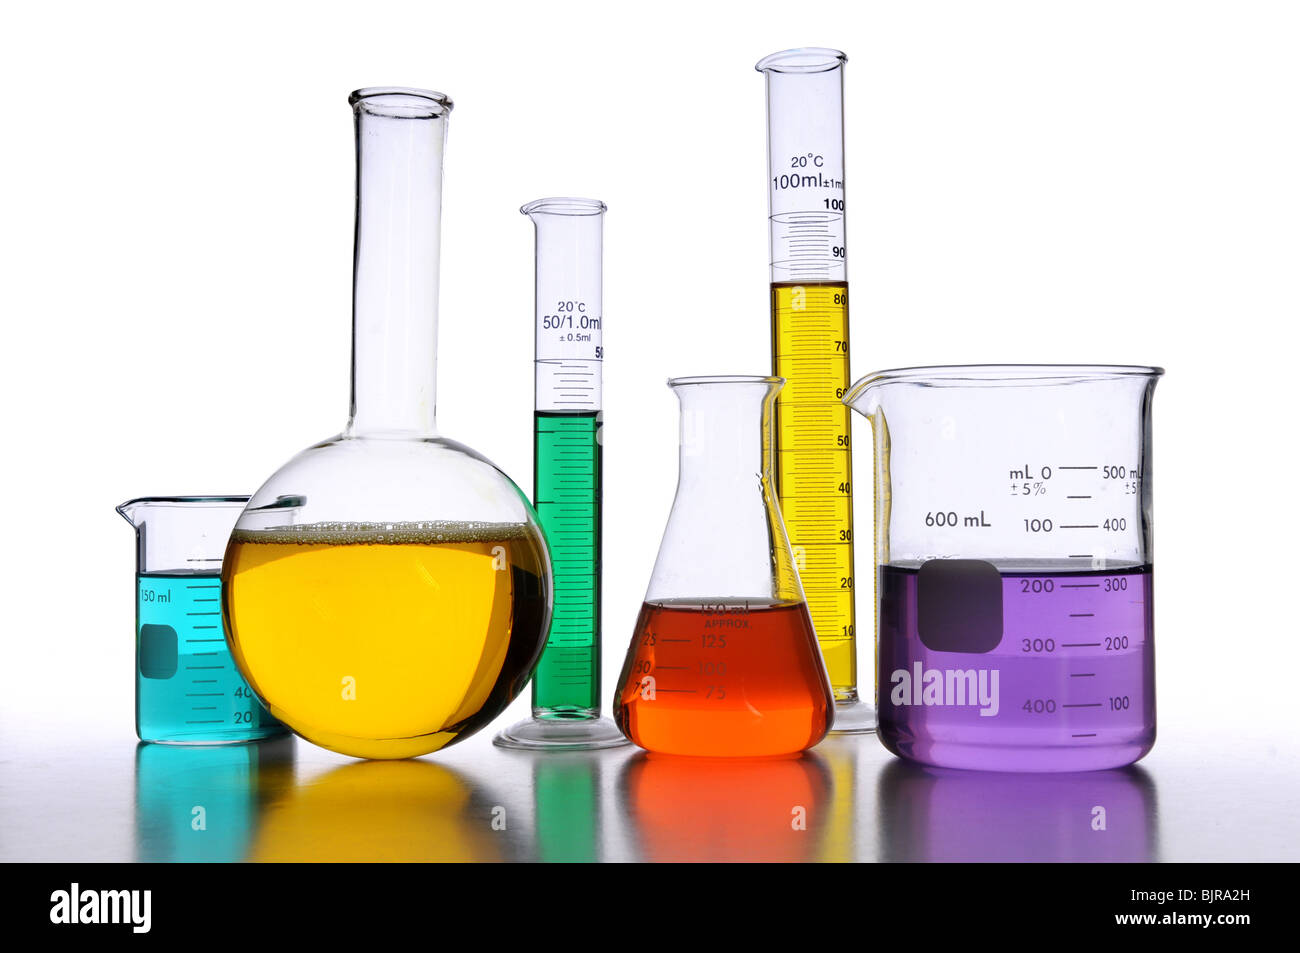 Laboratory glassware with liquids of different colors over white background - Stock Image